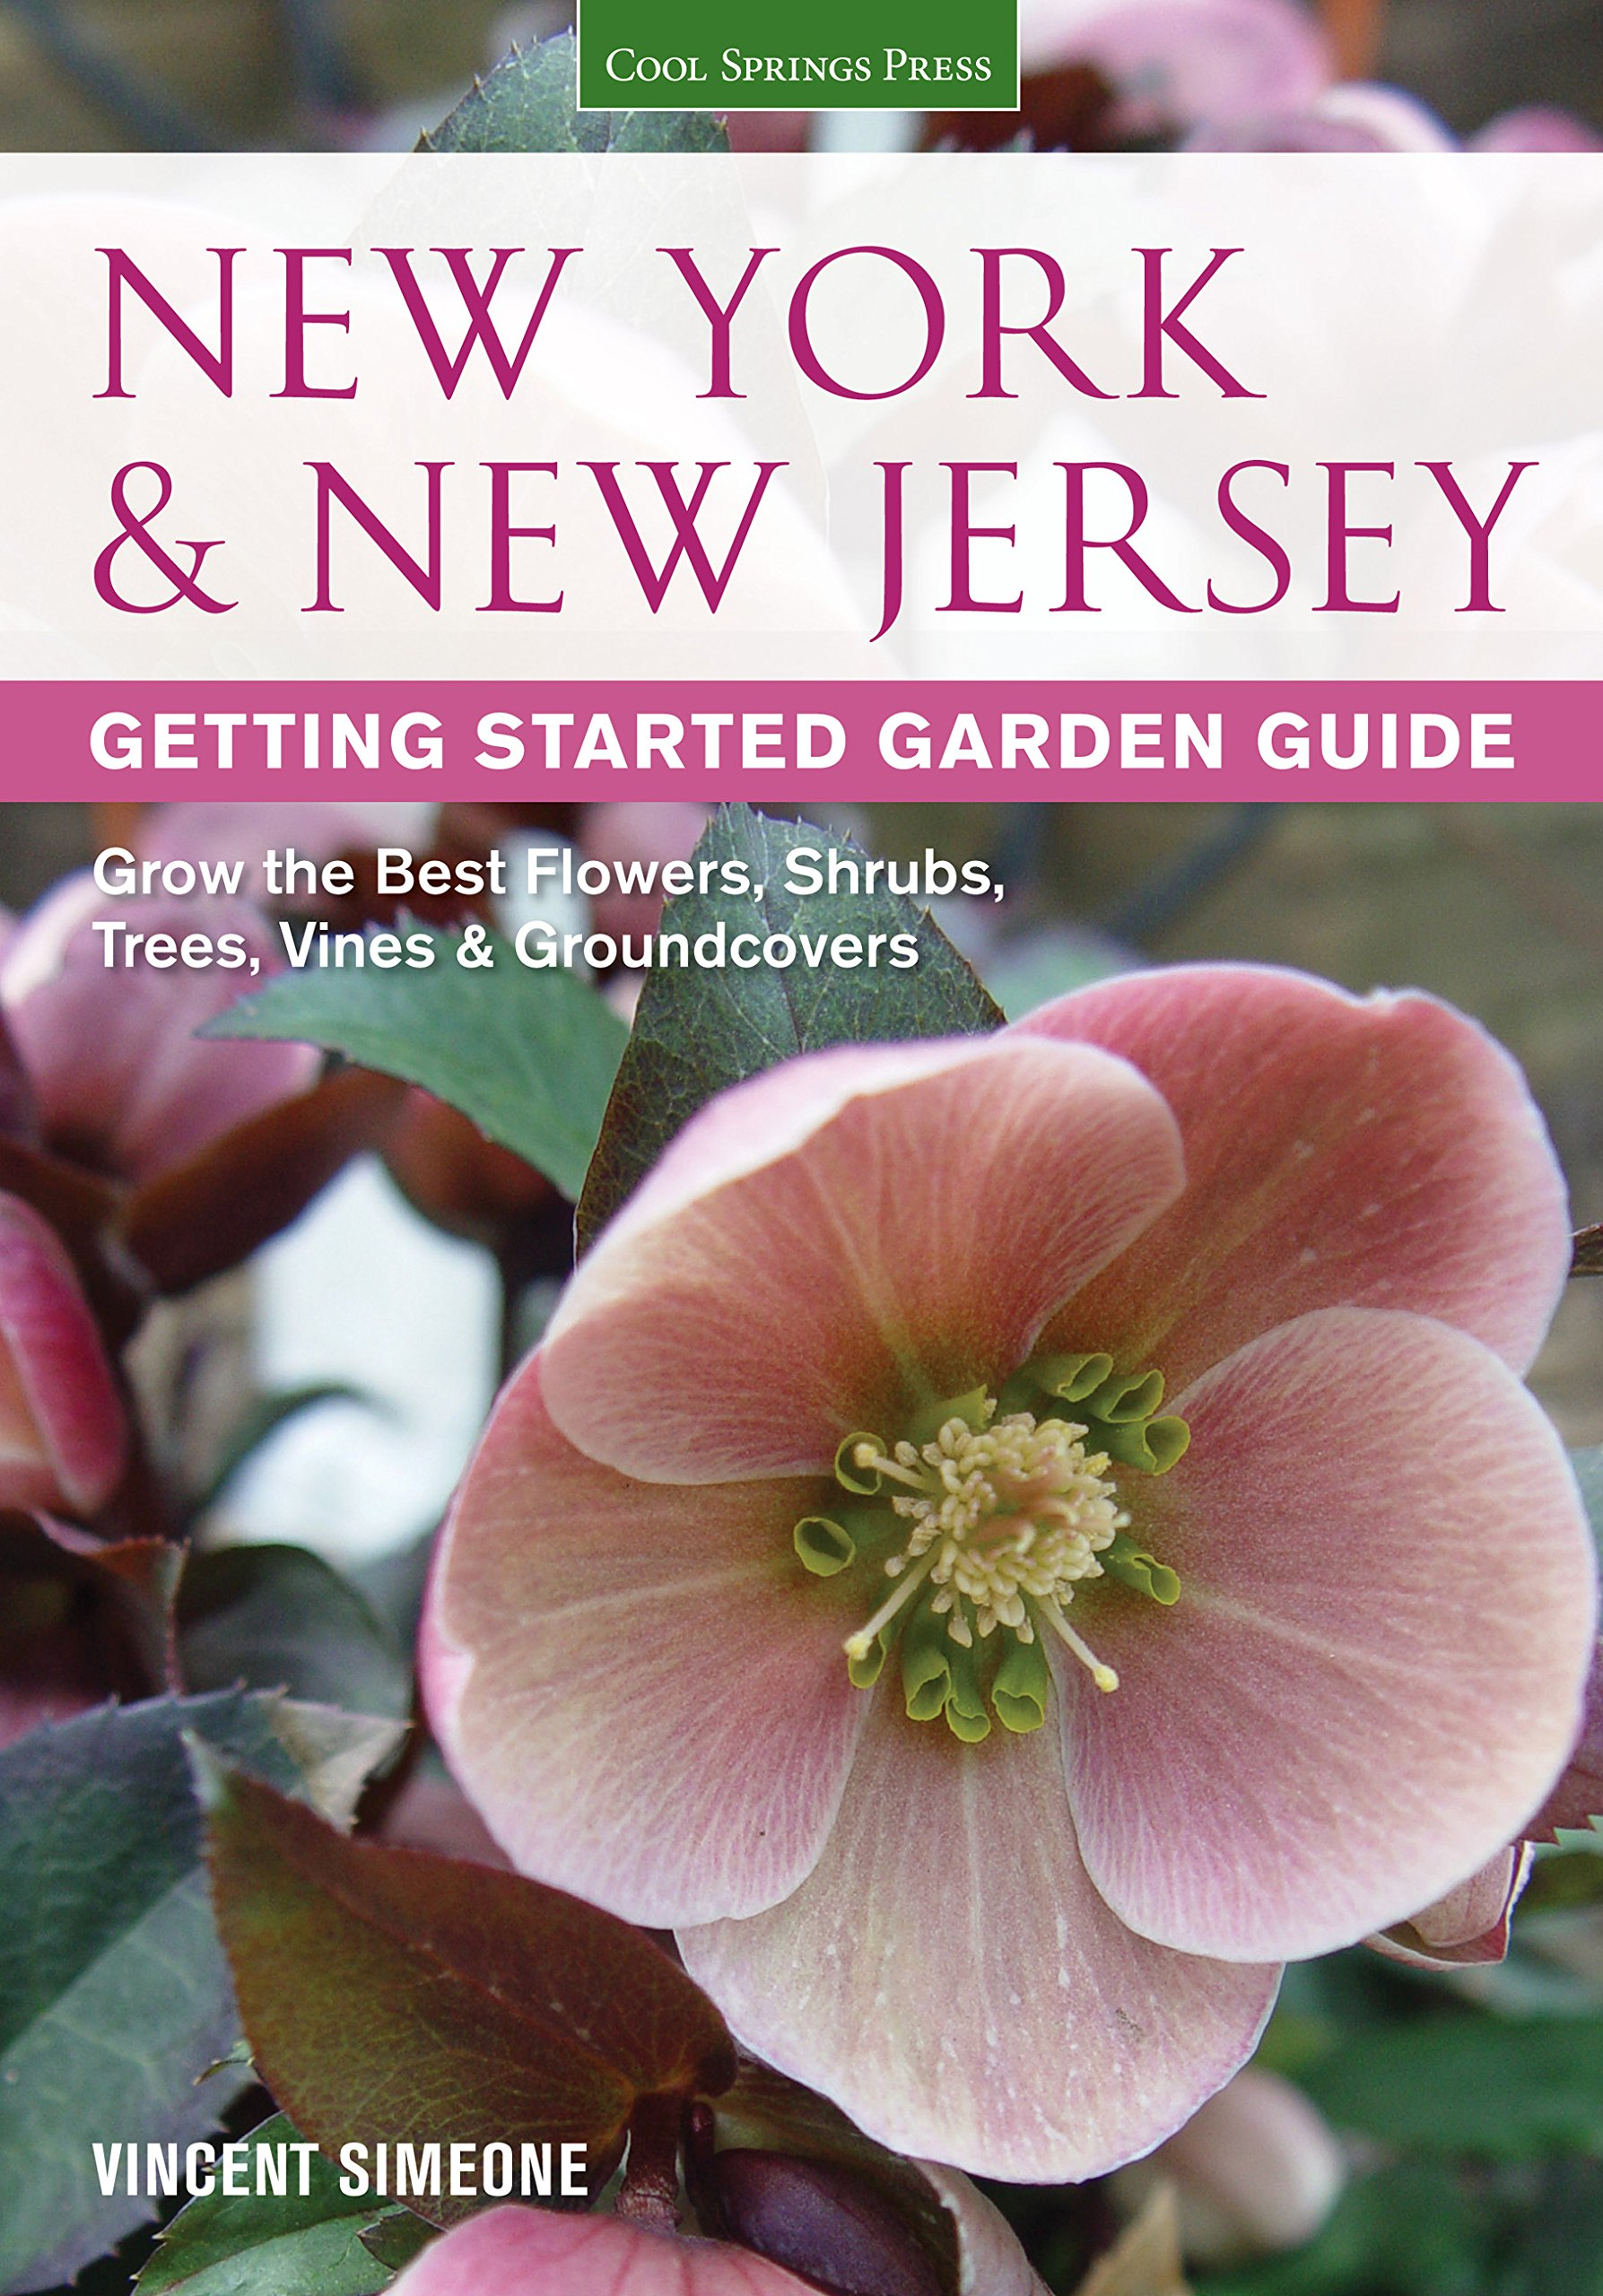 Read Online New York & New Jersey Getting Started Garden Guide: Grow the Best Flowers, Shrubs, Trees, Vines & Groundcovers (Garden Guides) pdf epub